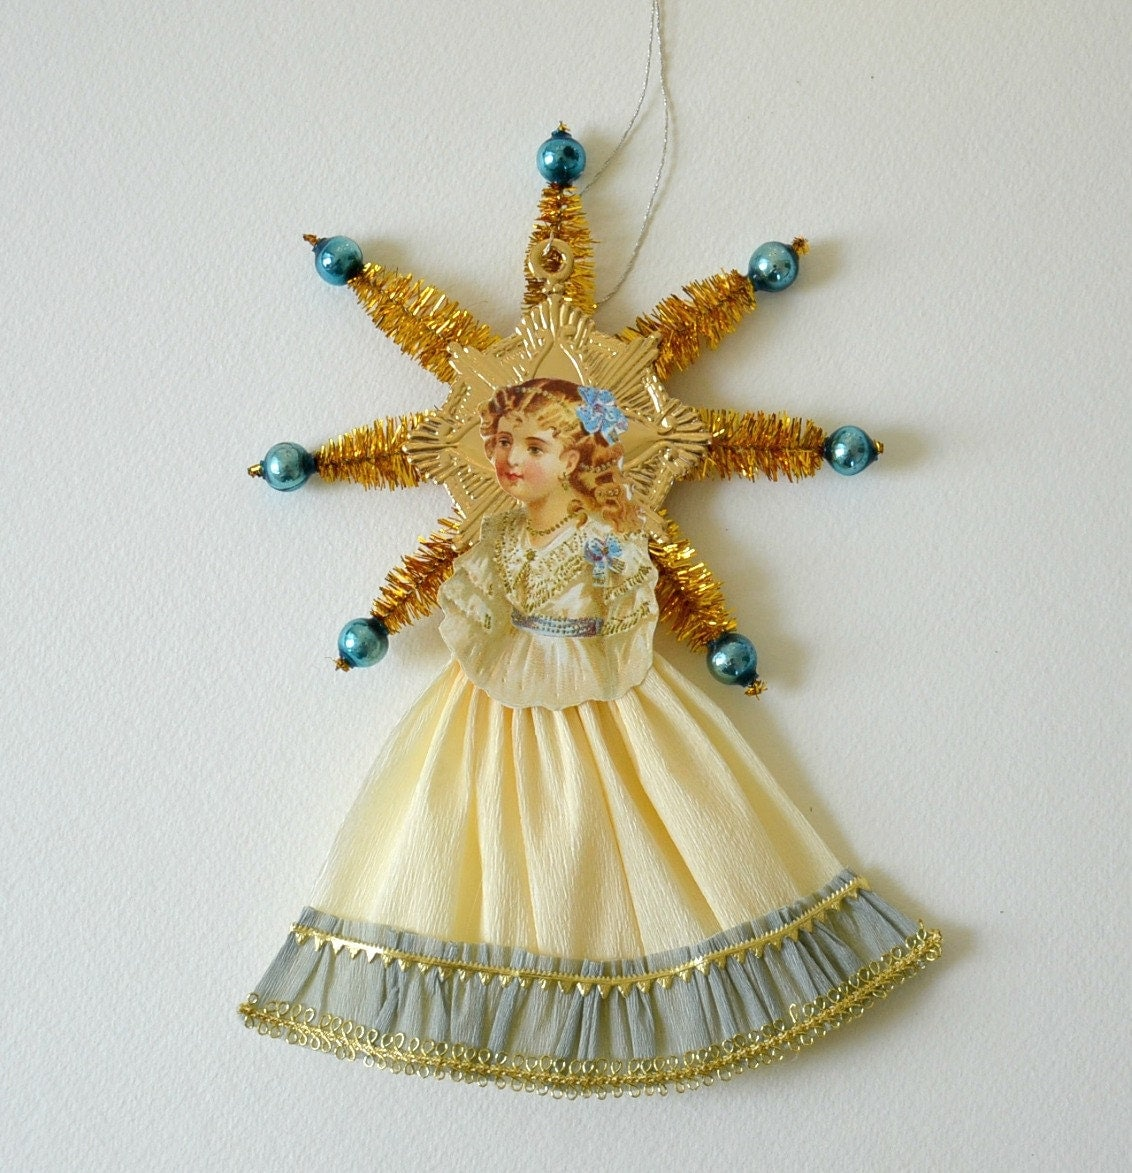 Victorian Christmas Decorations: Victorian Scrap Christmas Ornaments / German Scrap Ornaments